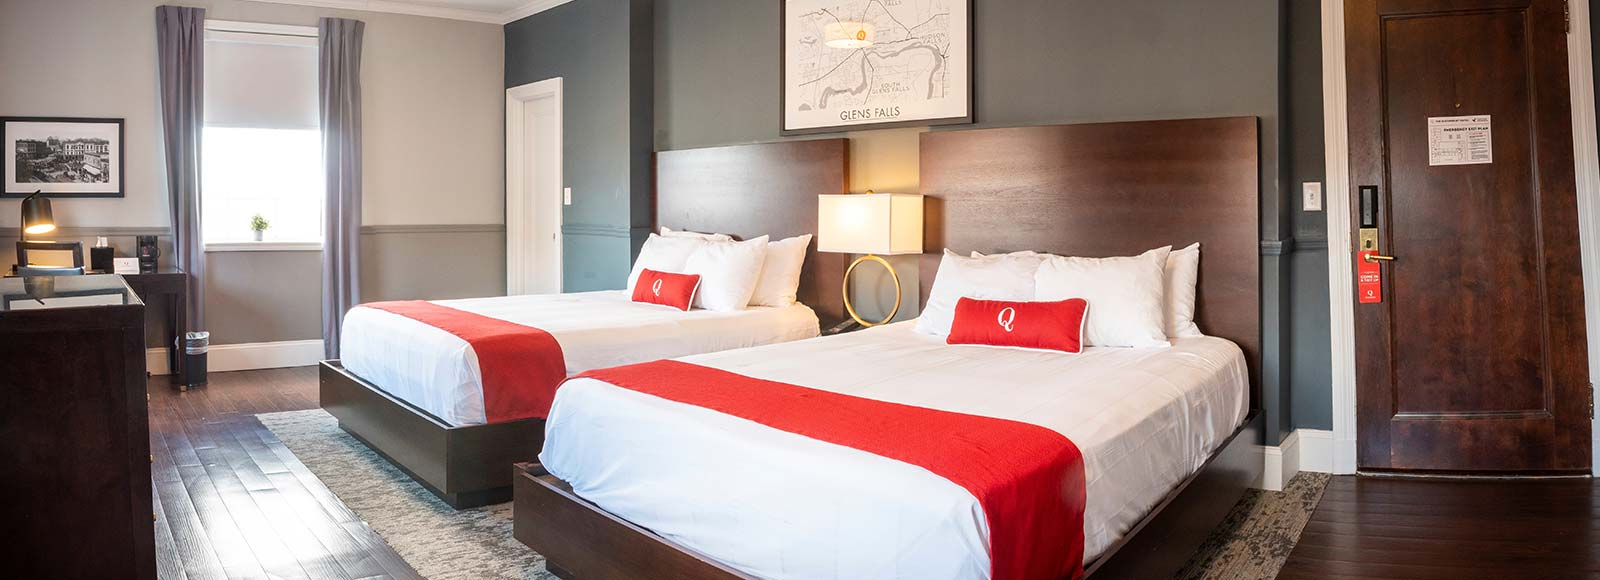 2 queen beds in modern styled hotel room